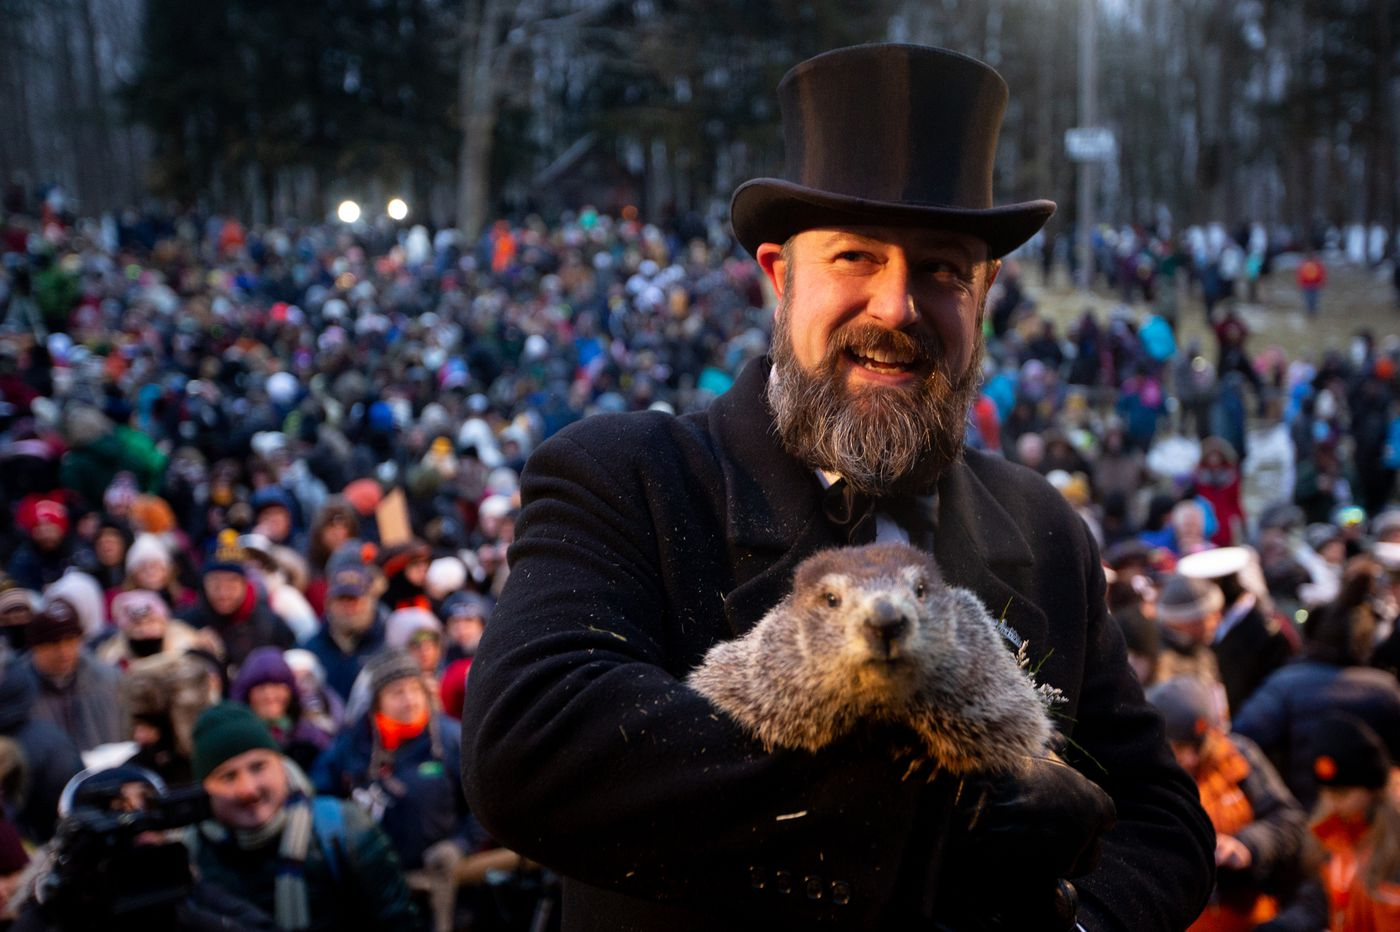 Groundhog Day The Improbable Holiday That Brings A Shot